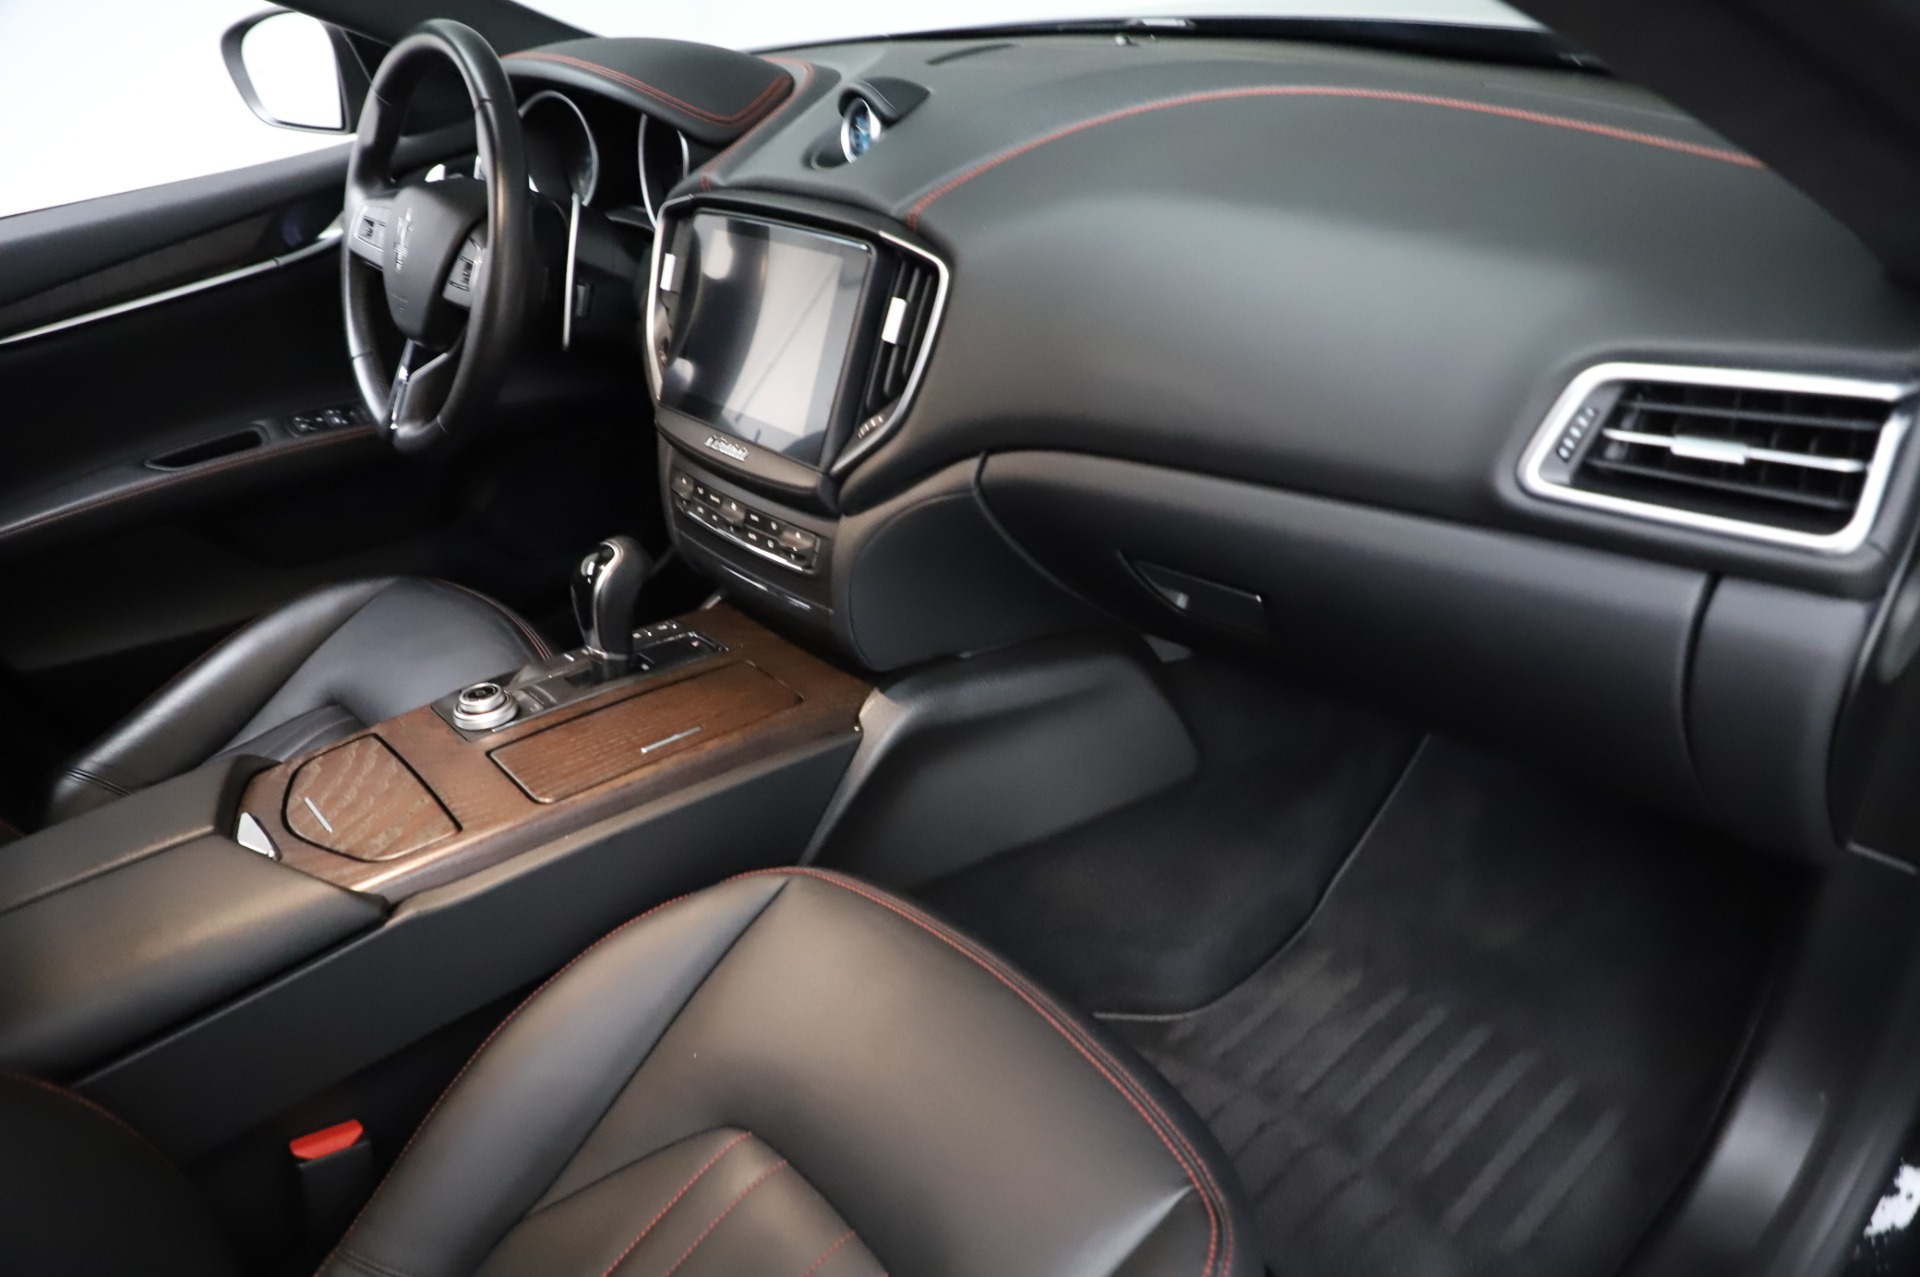 Used 2018 Maserati Ghibli S Q4 For Sale In Westport, CT 1698_p23